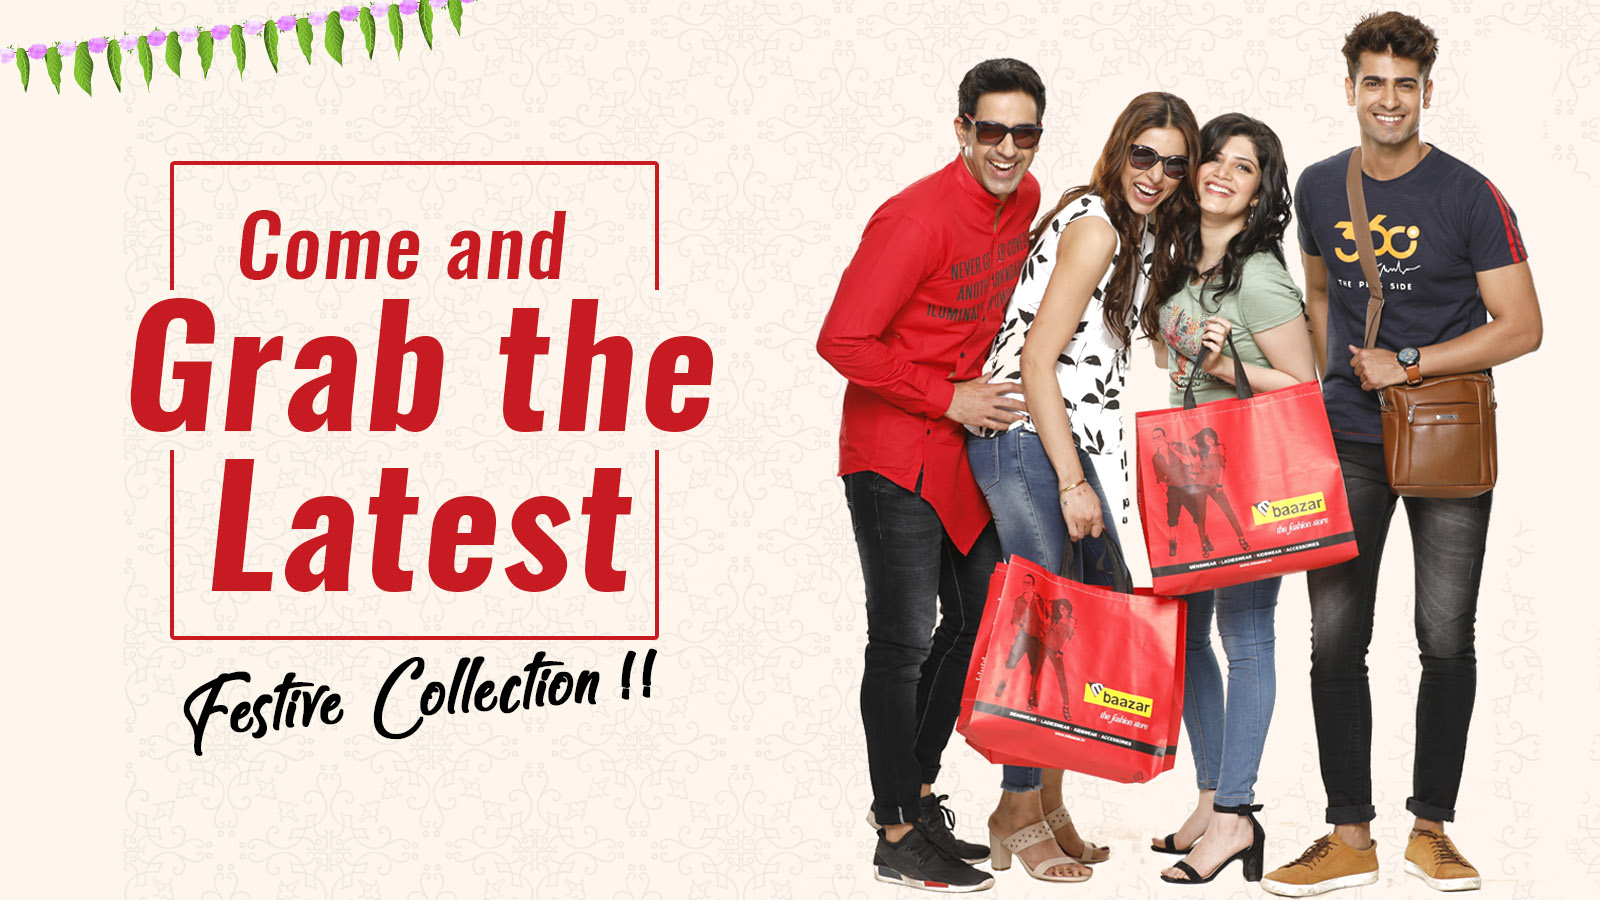 Latest Festive Collection at M Baazar